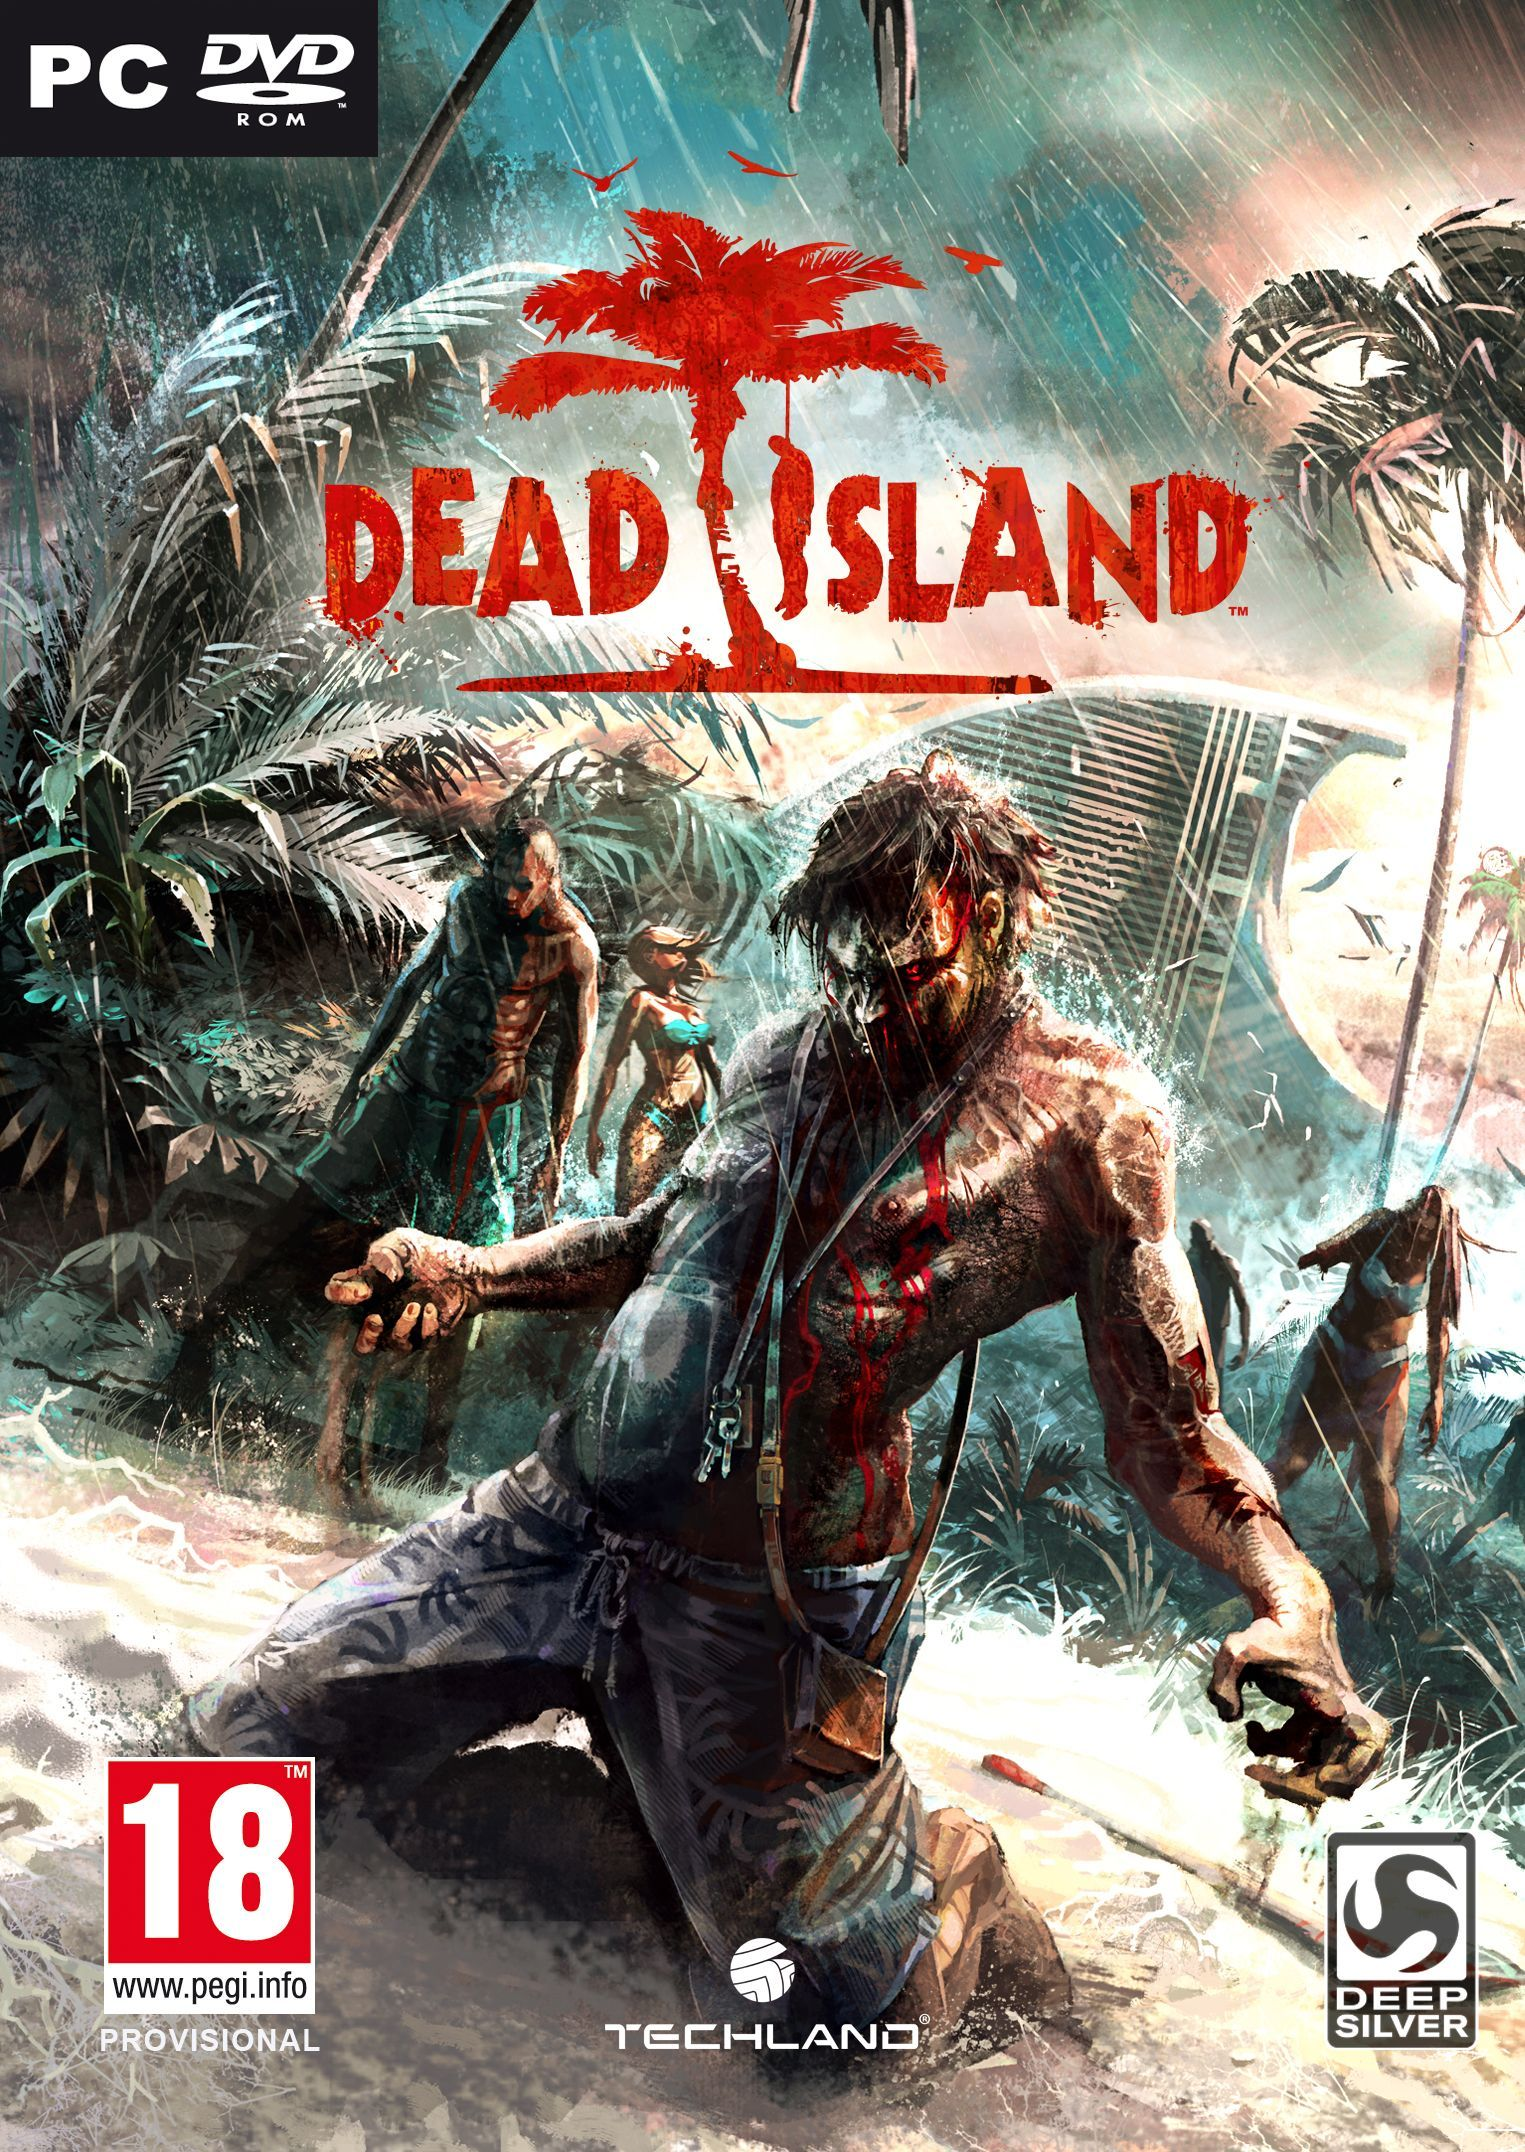 Image result for Dead_Island cover pc